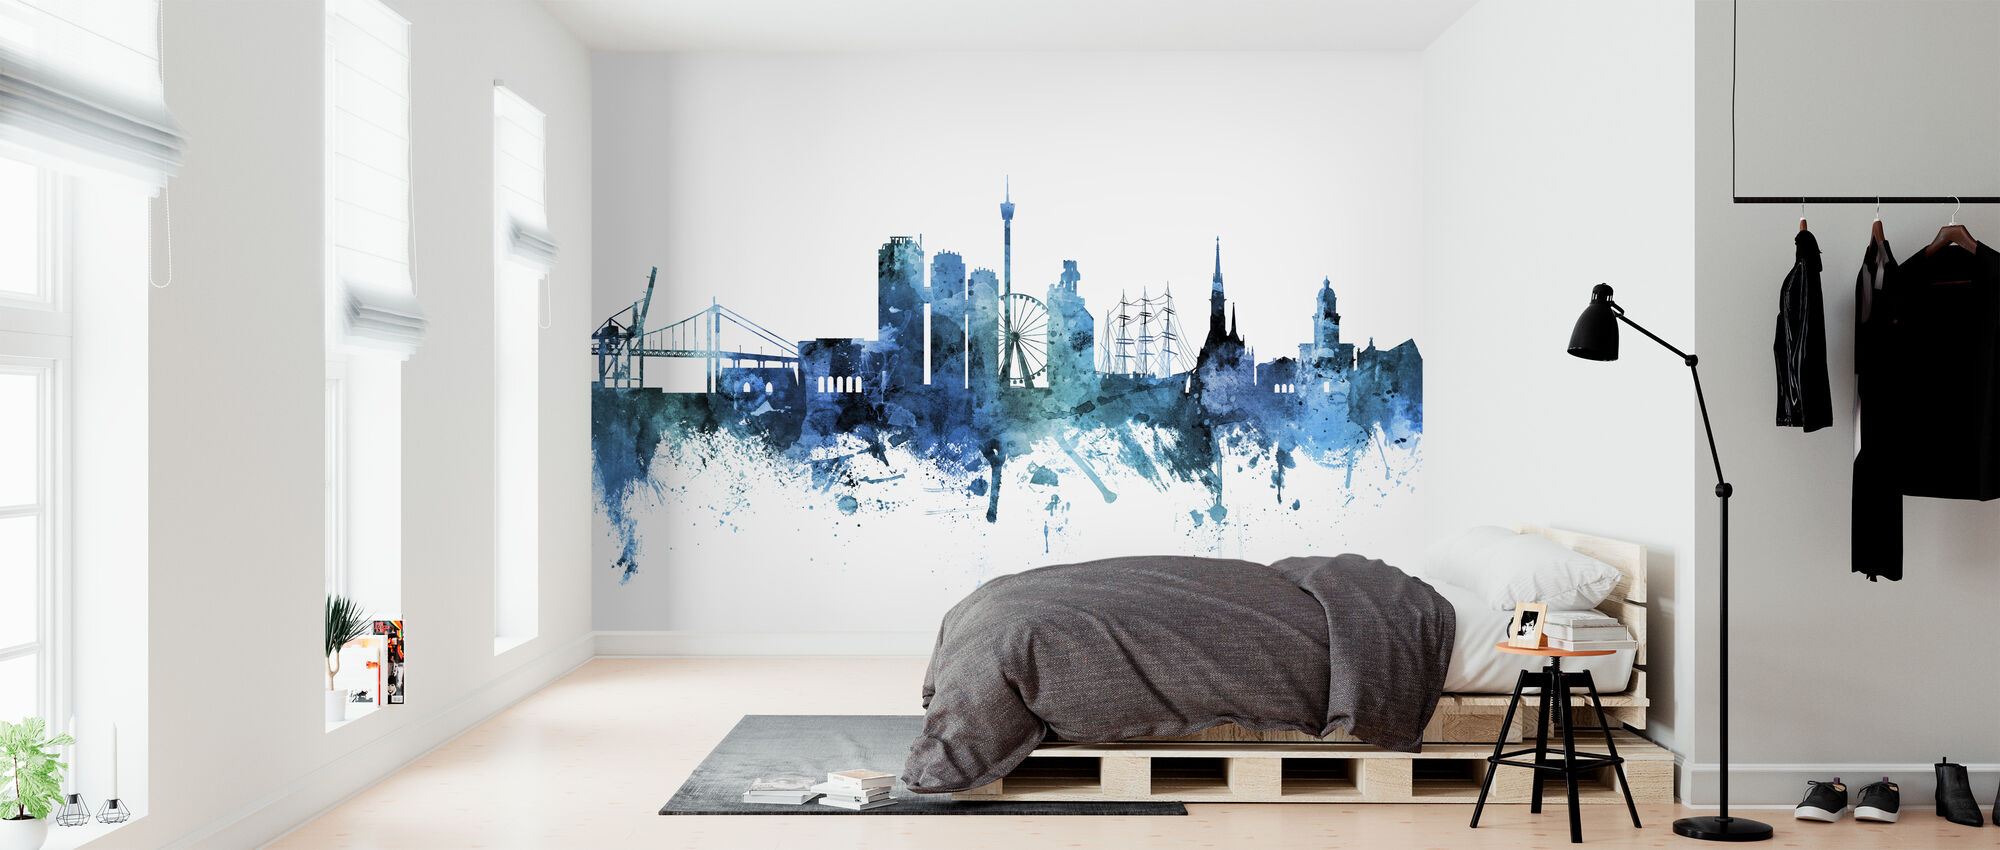 Gothenburg Sweden Skyline - Wallpaper - Bedroom